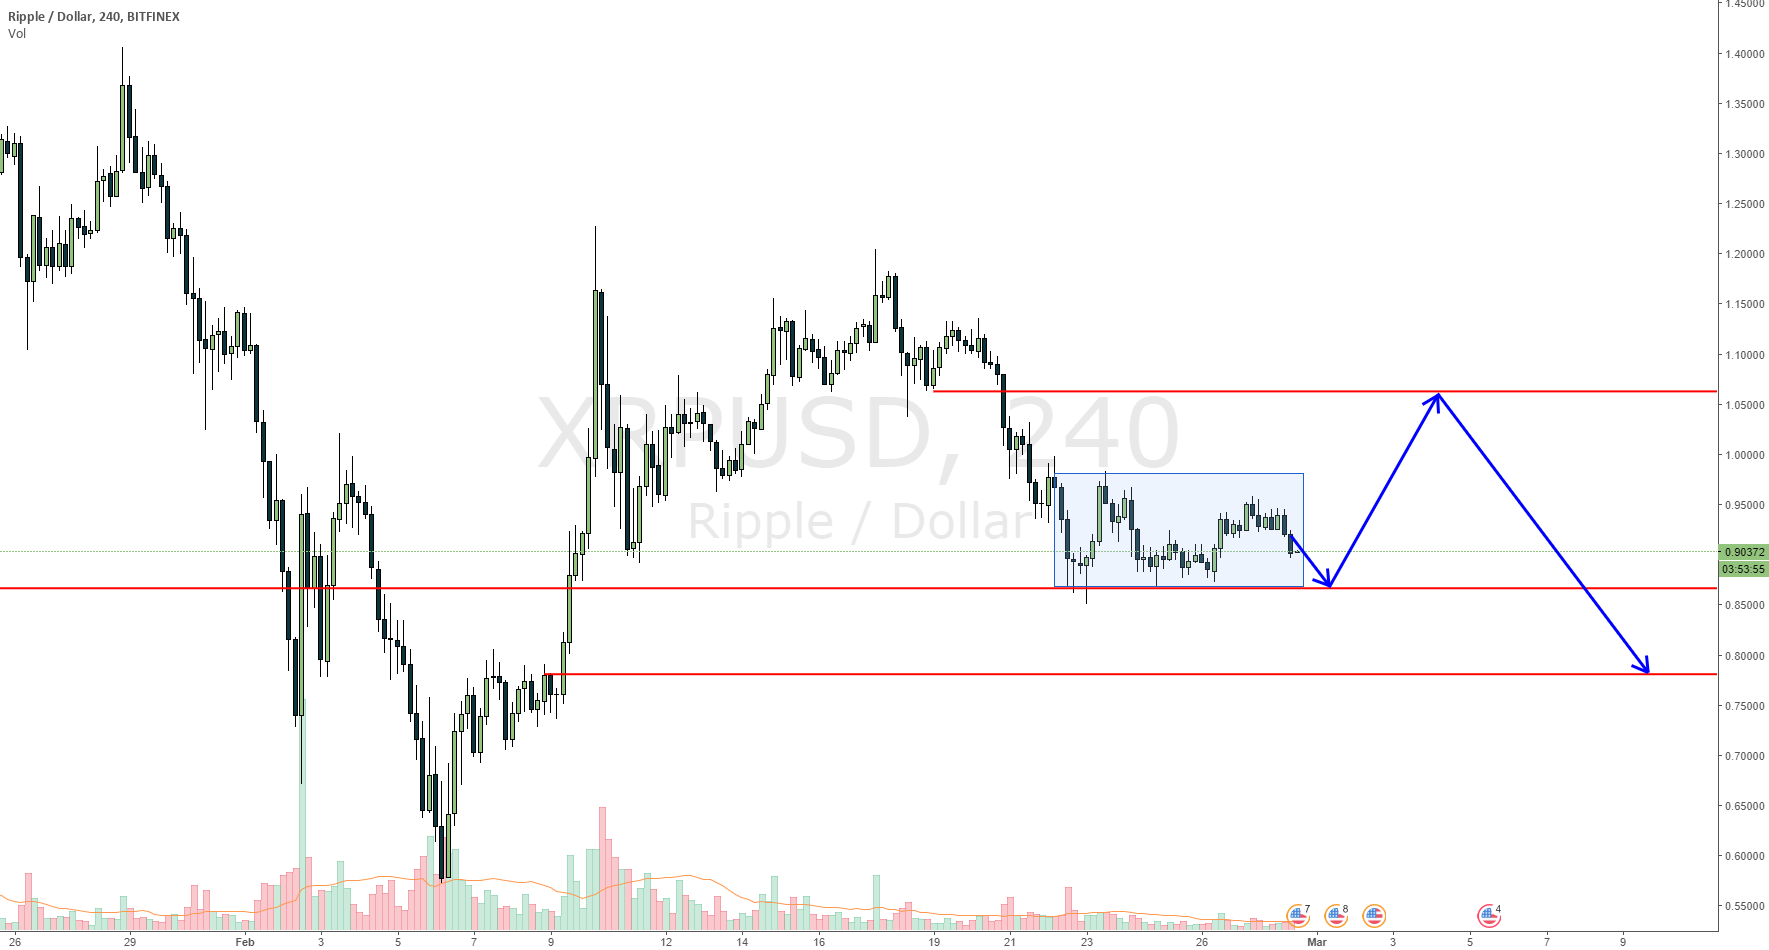 XRPUSD range bound and probably seek liquidity above before fall